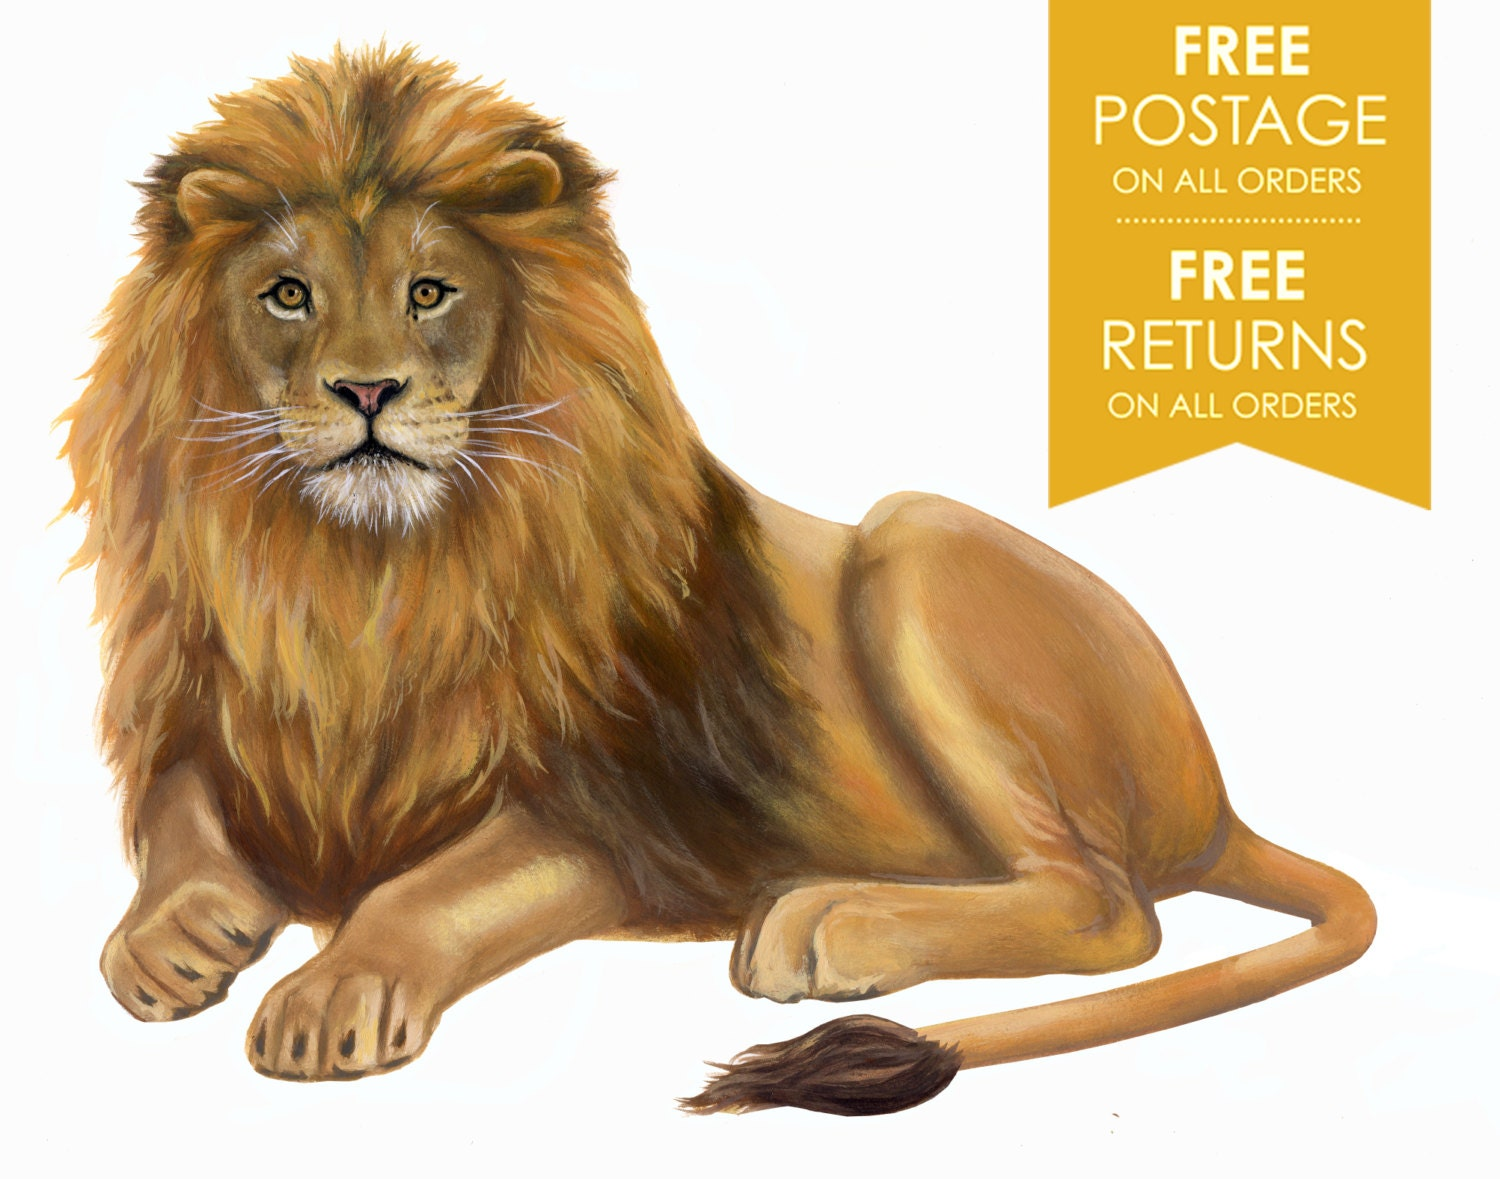 Wall Stickers How To Apply Lion Decal Lion Wall Sticker Lion Wall Decal Hand Painted